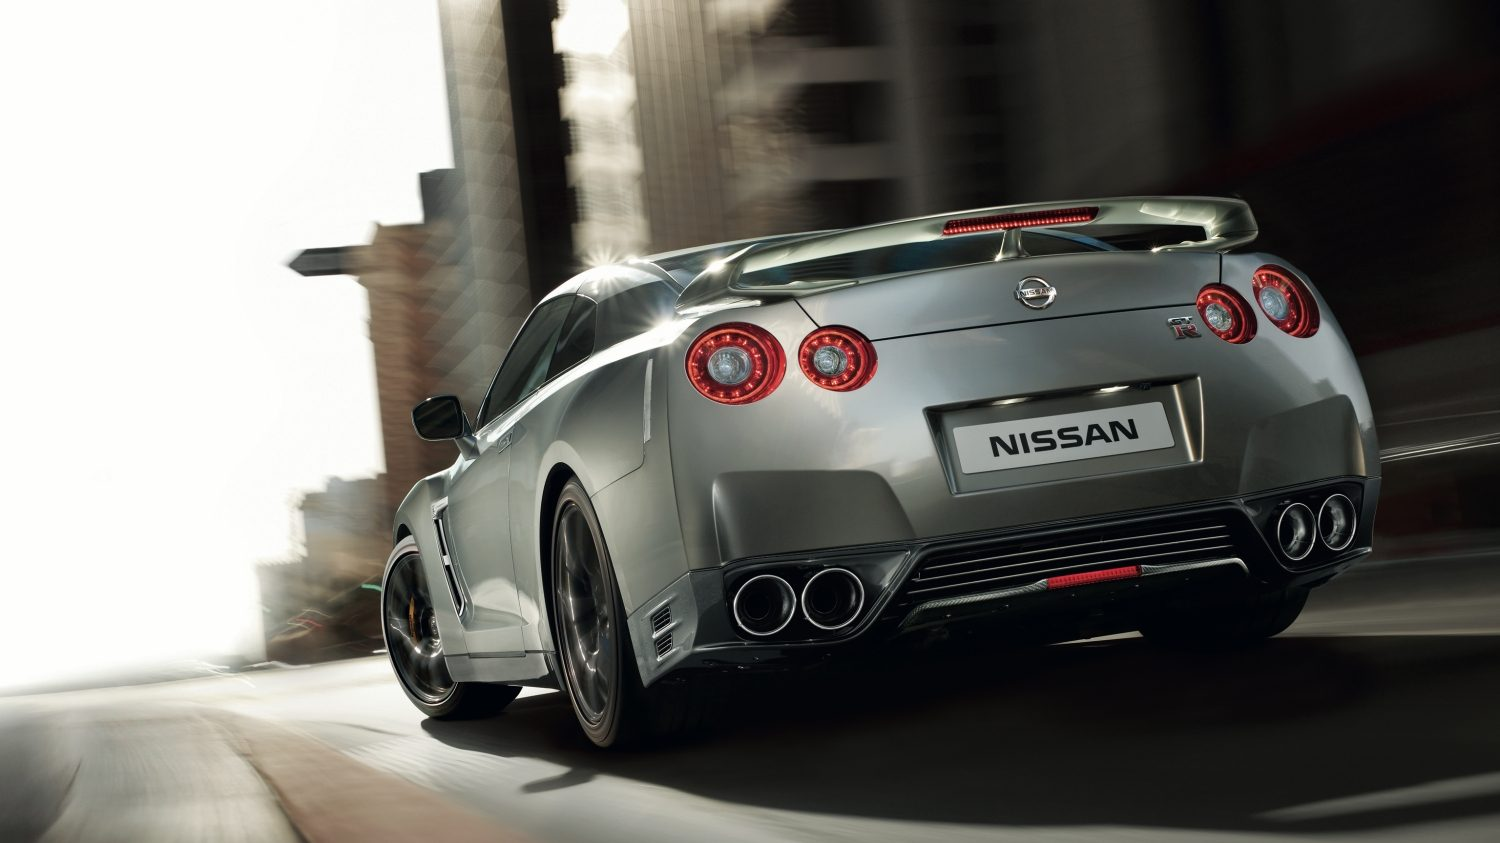 Nissan GT-R grey - Back view of car driving